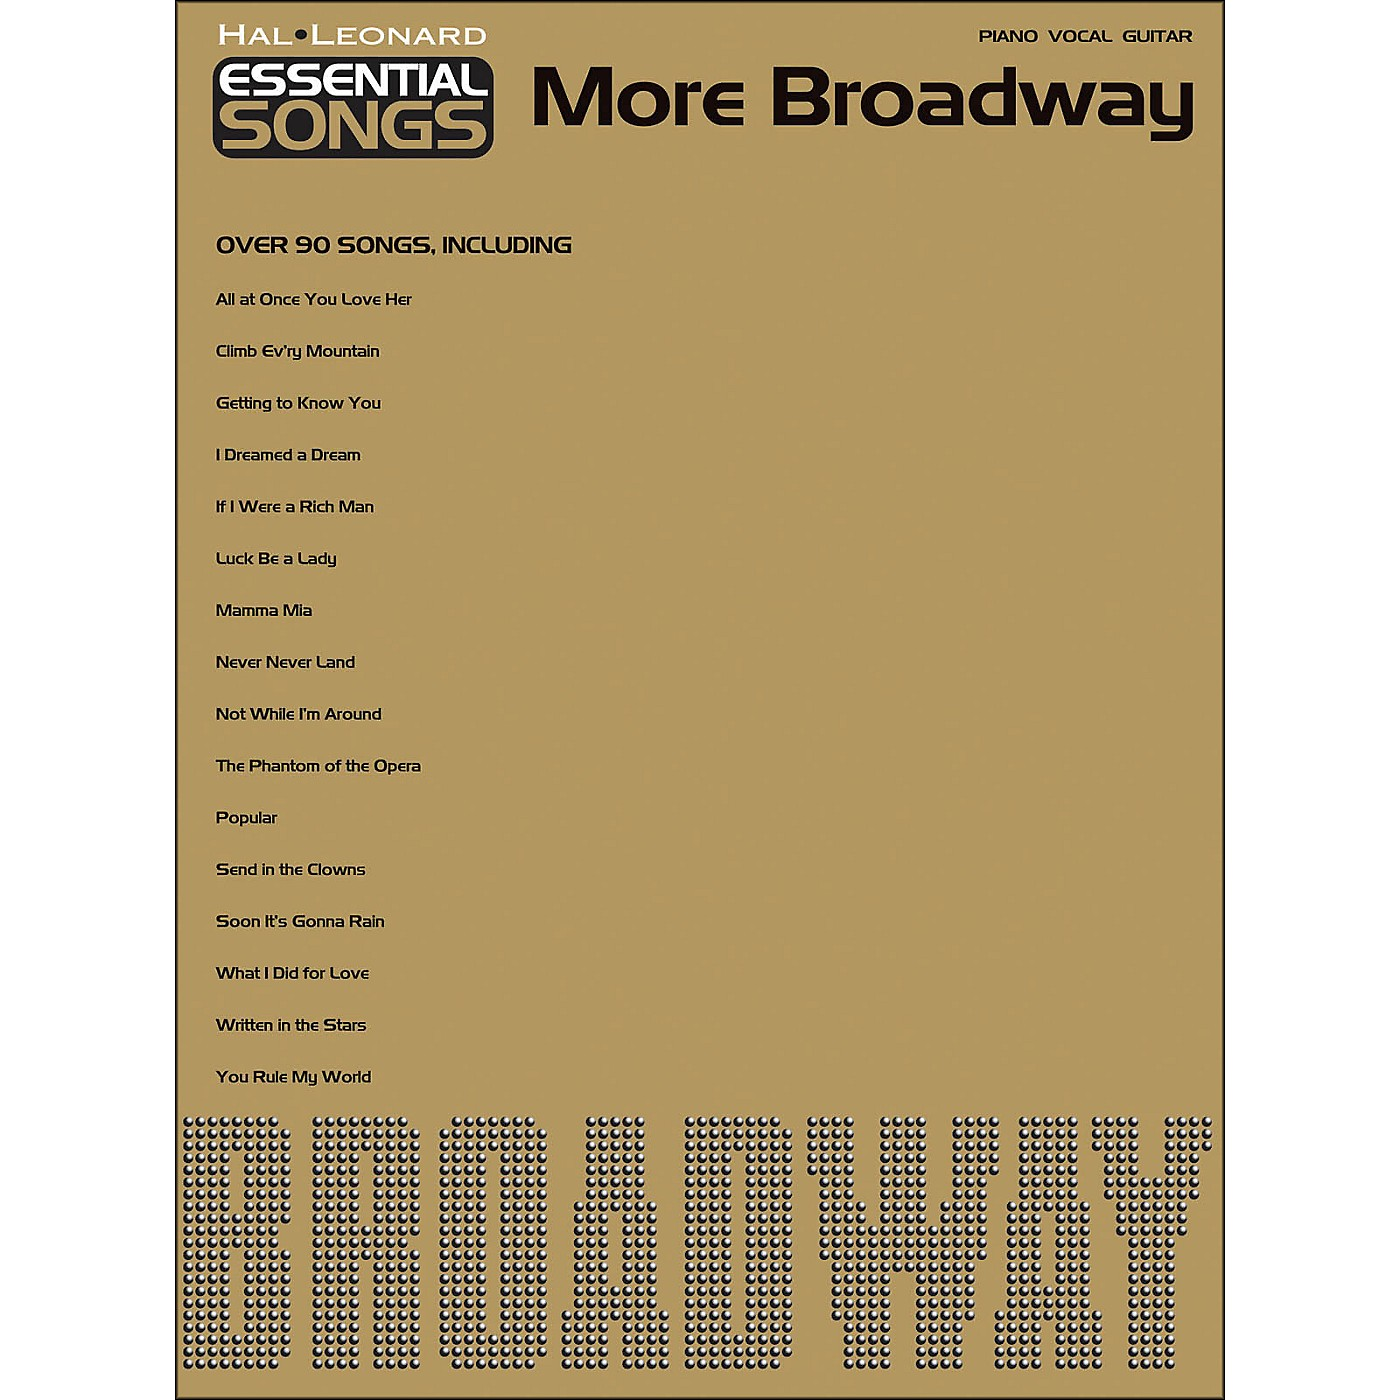 Hal Leonard Essential Songs - More Broadway arranged for piano, vocal, and guitar (P/V/G) thumbnail